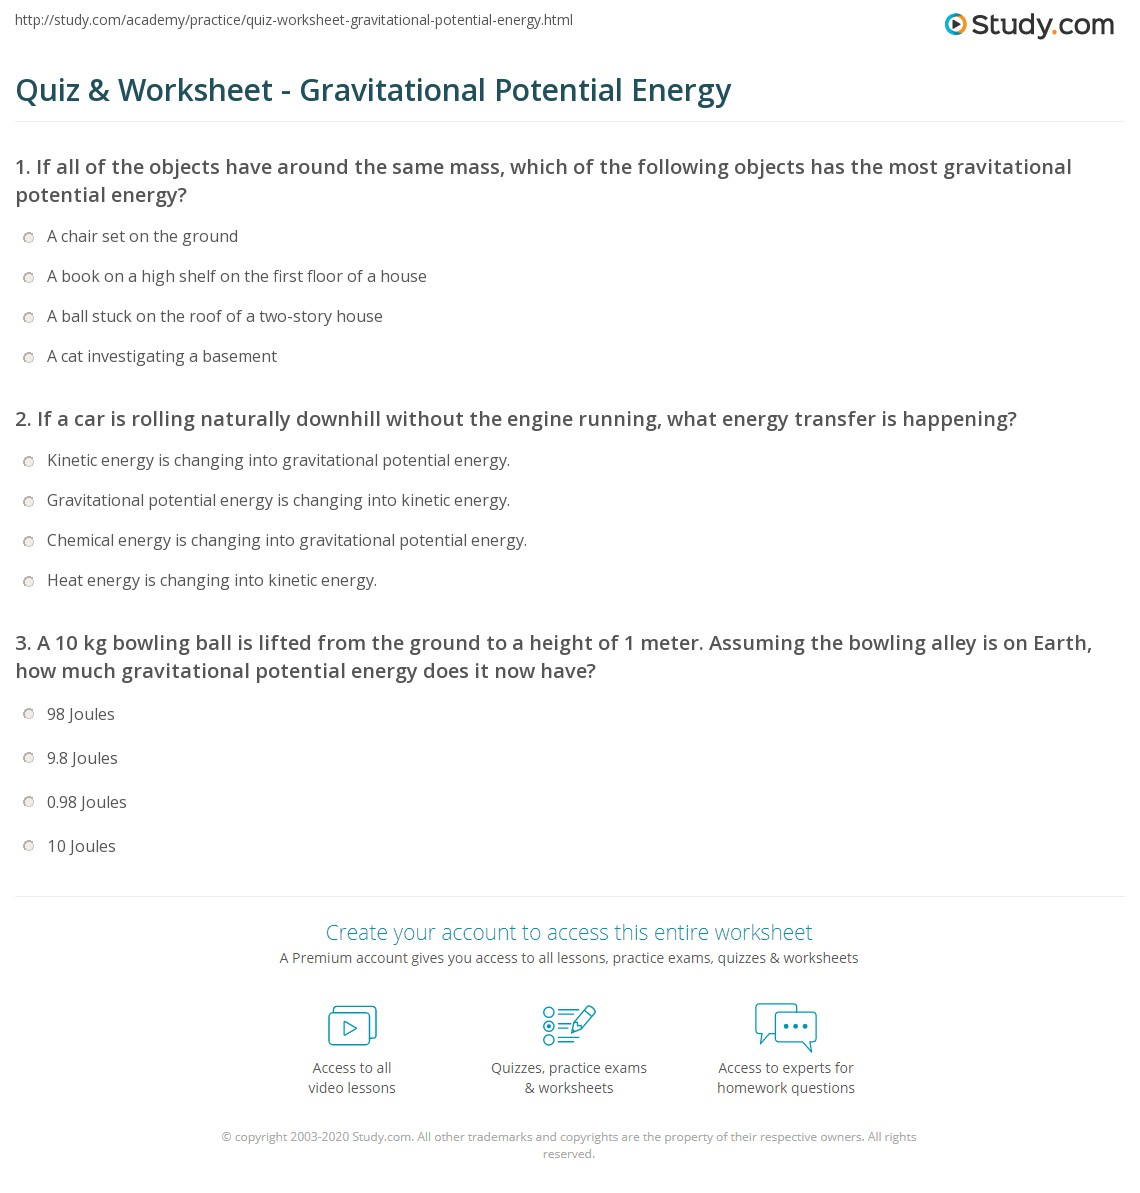 Quiz & Worksheet - Gravitational Potential Energy | Study.com